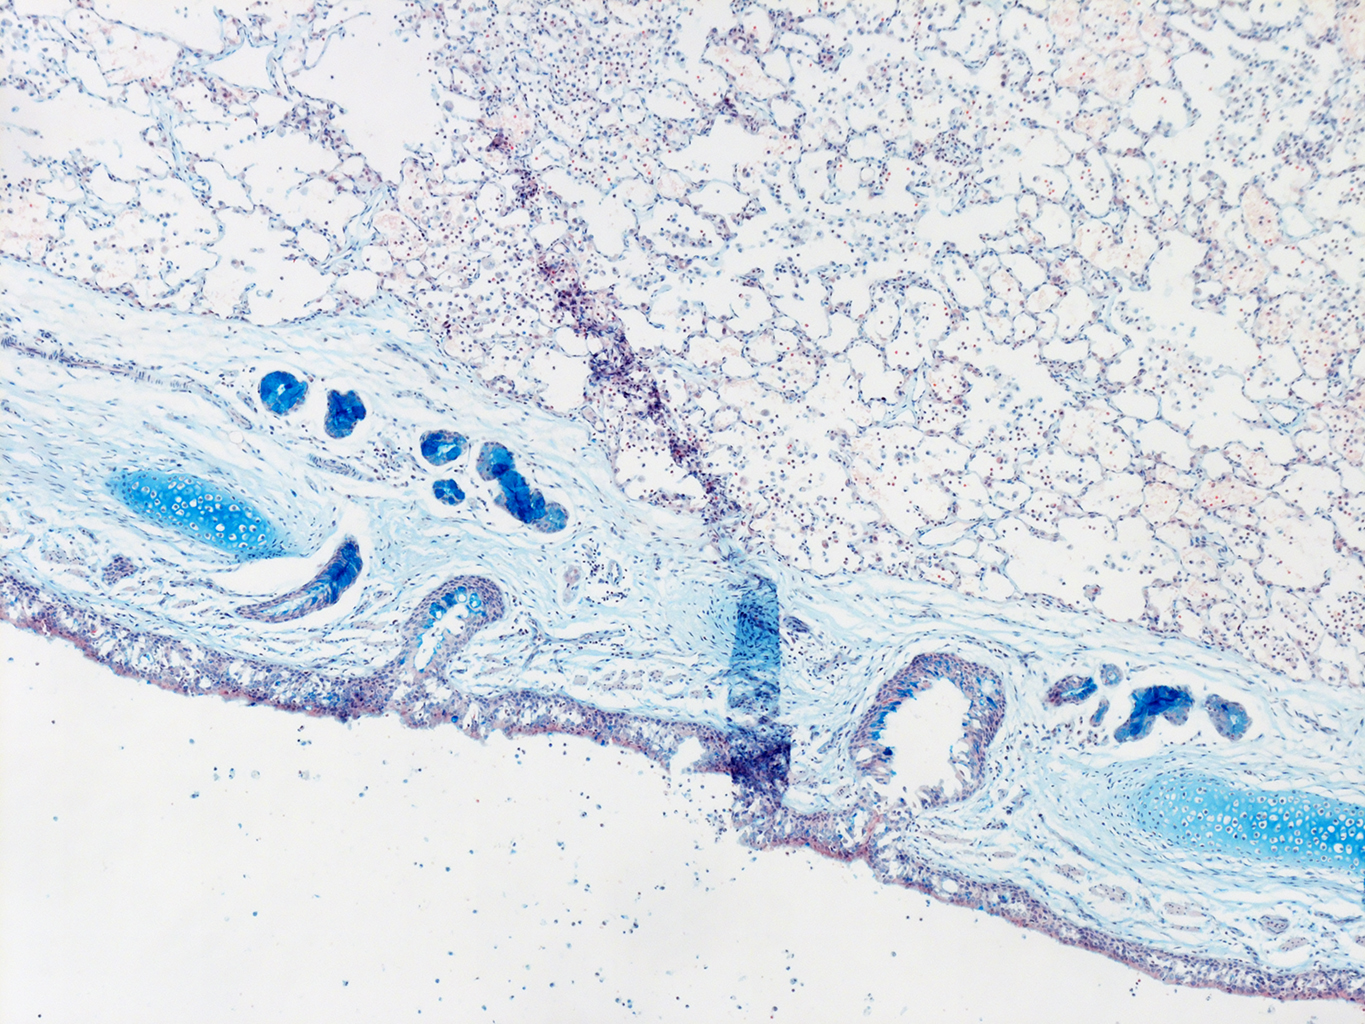 AB Staining of 11 Month-Old Human Lung from Donor D094-LLL-4B3